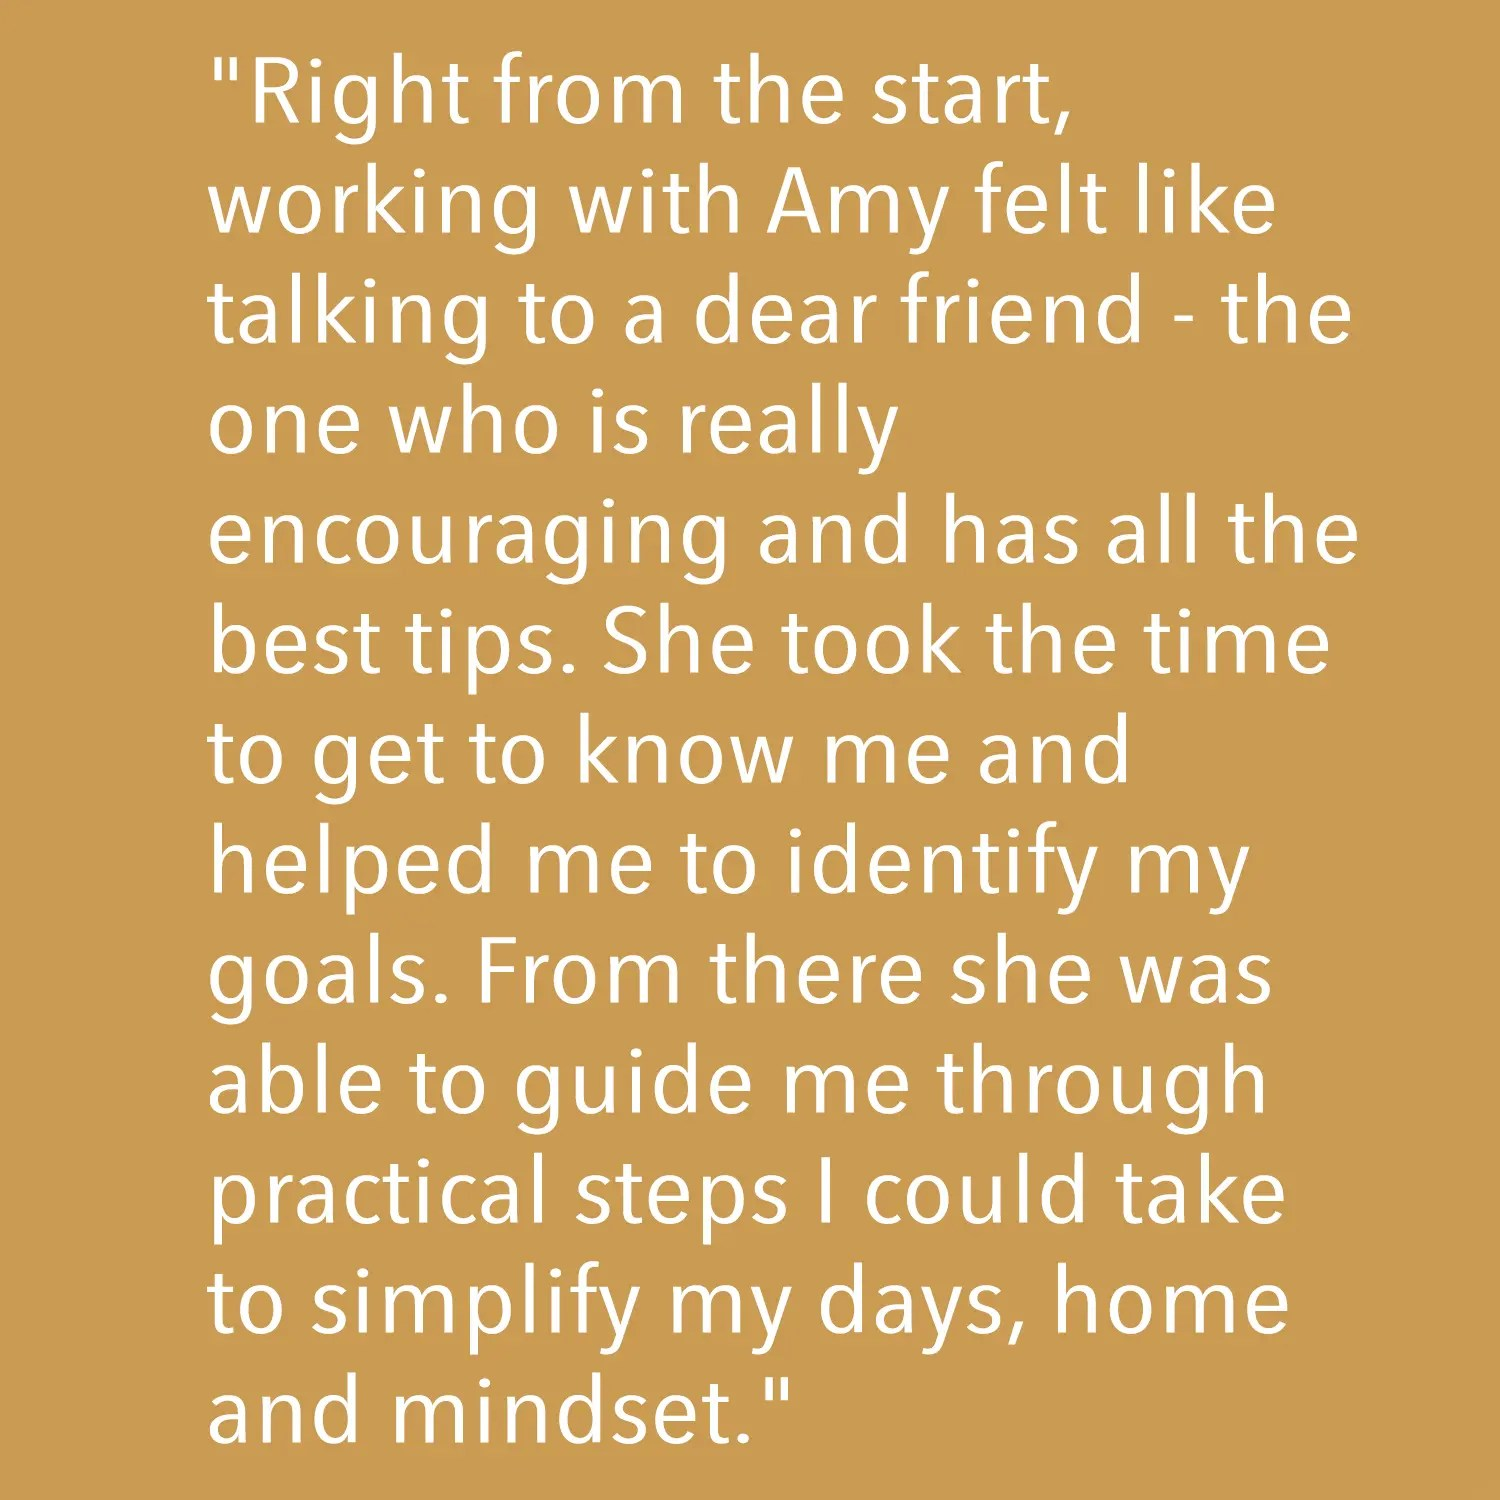 Testimonial - Right from the start...